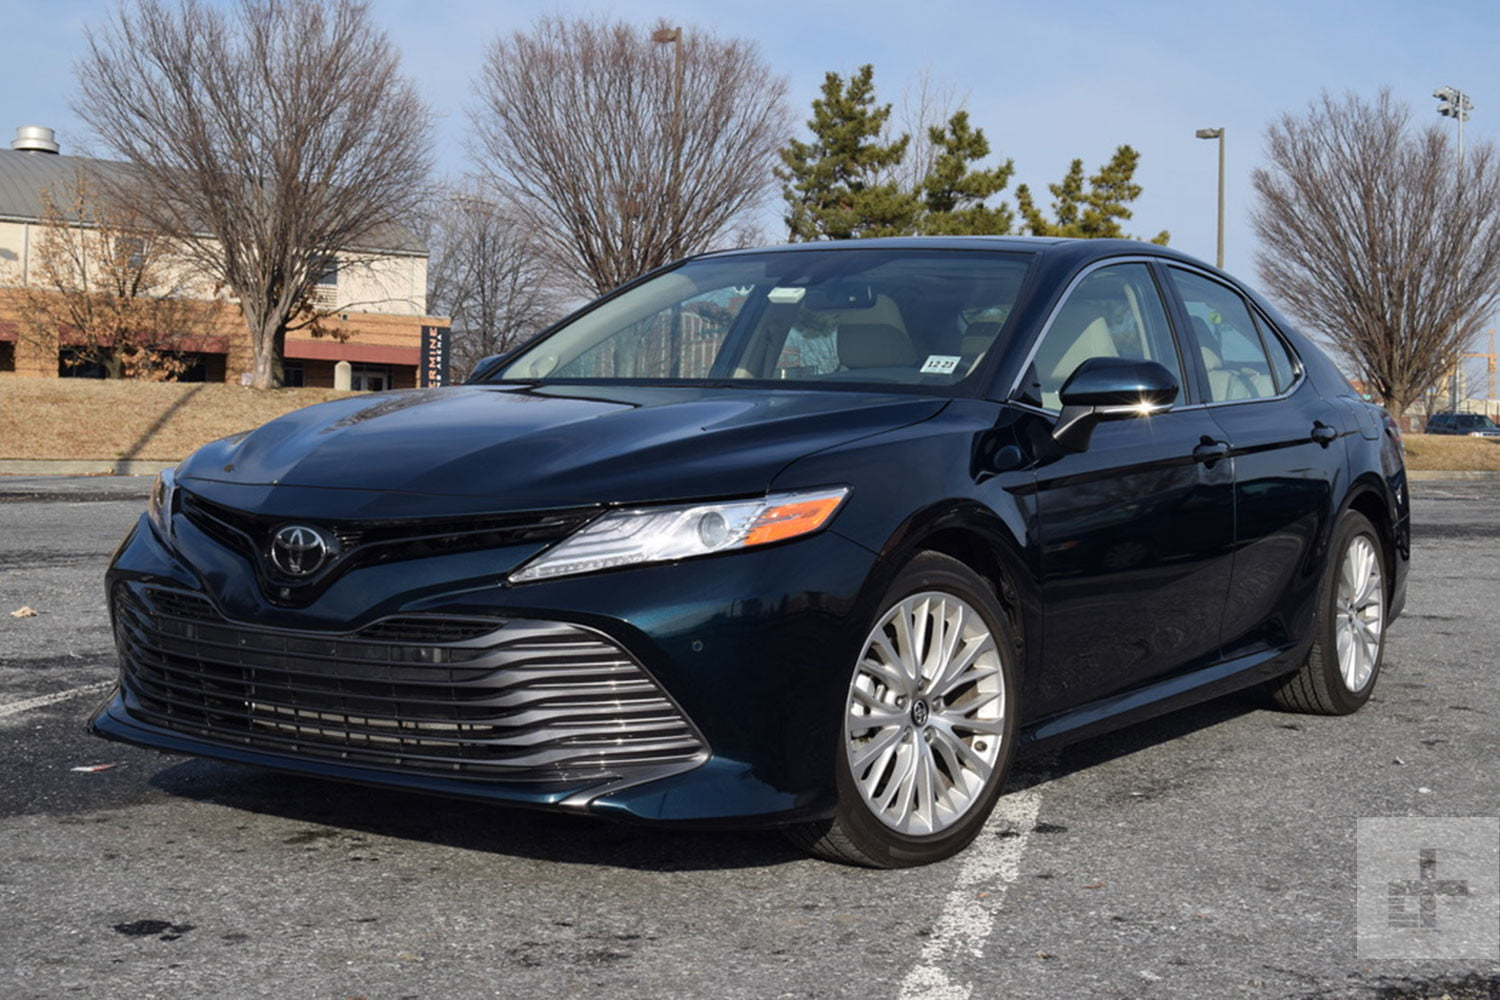 2019 Toyota Camry Xle V6 Review A Reliable Pick Gets Better Tech